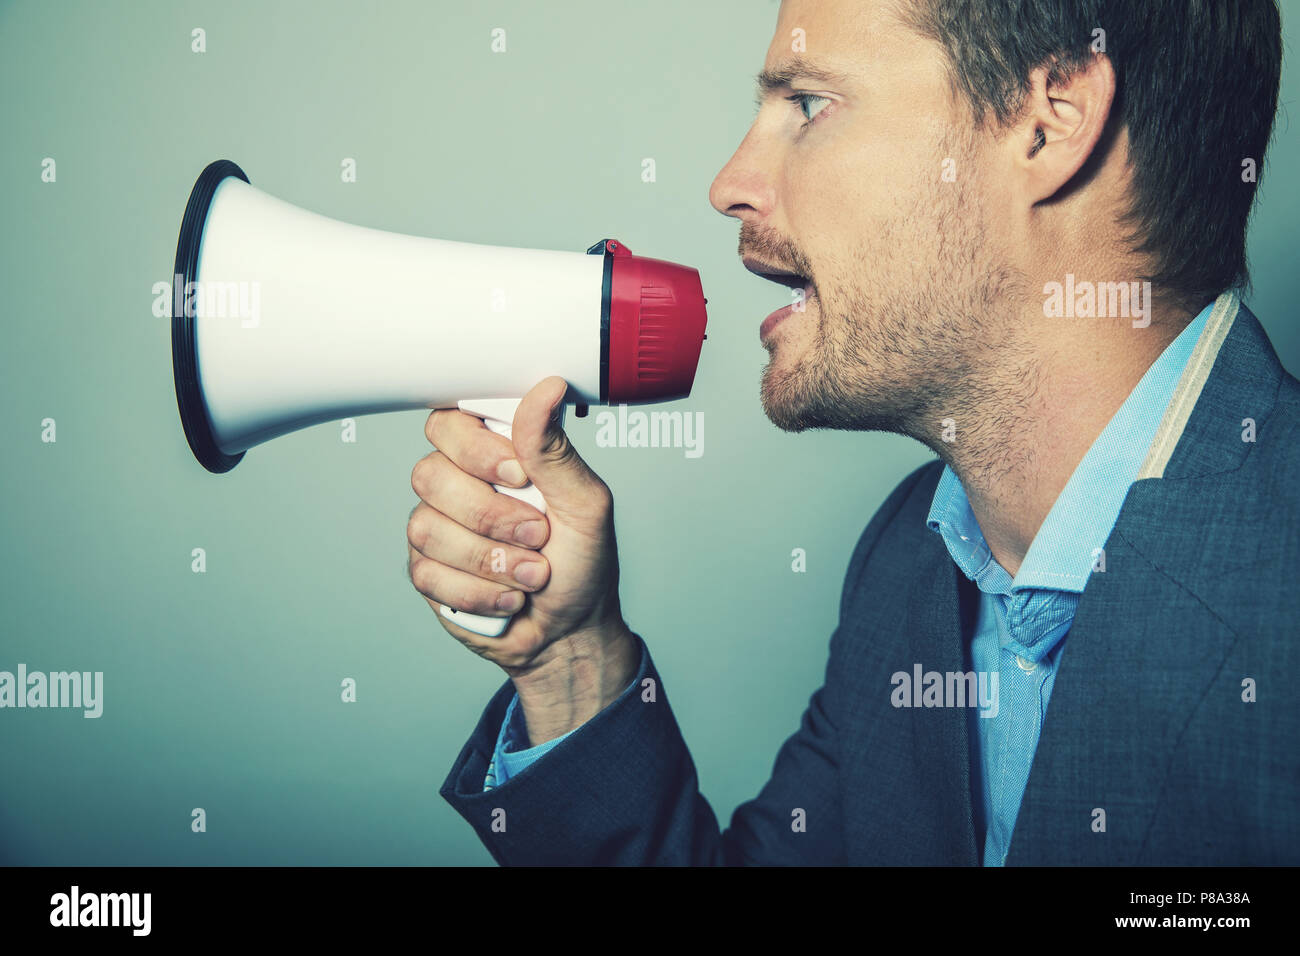 business leadership - businessman giving instructions with megaphone - Stock Image